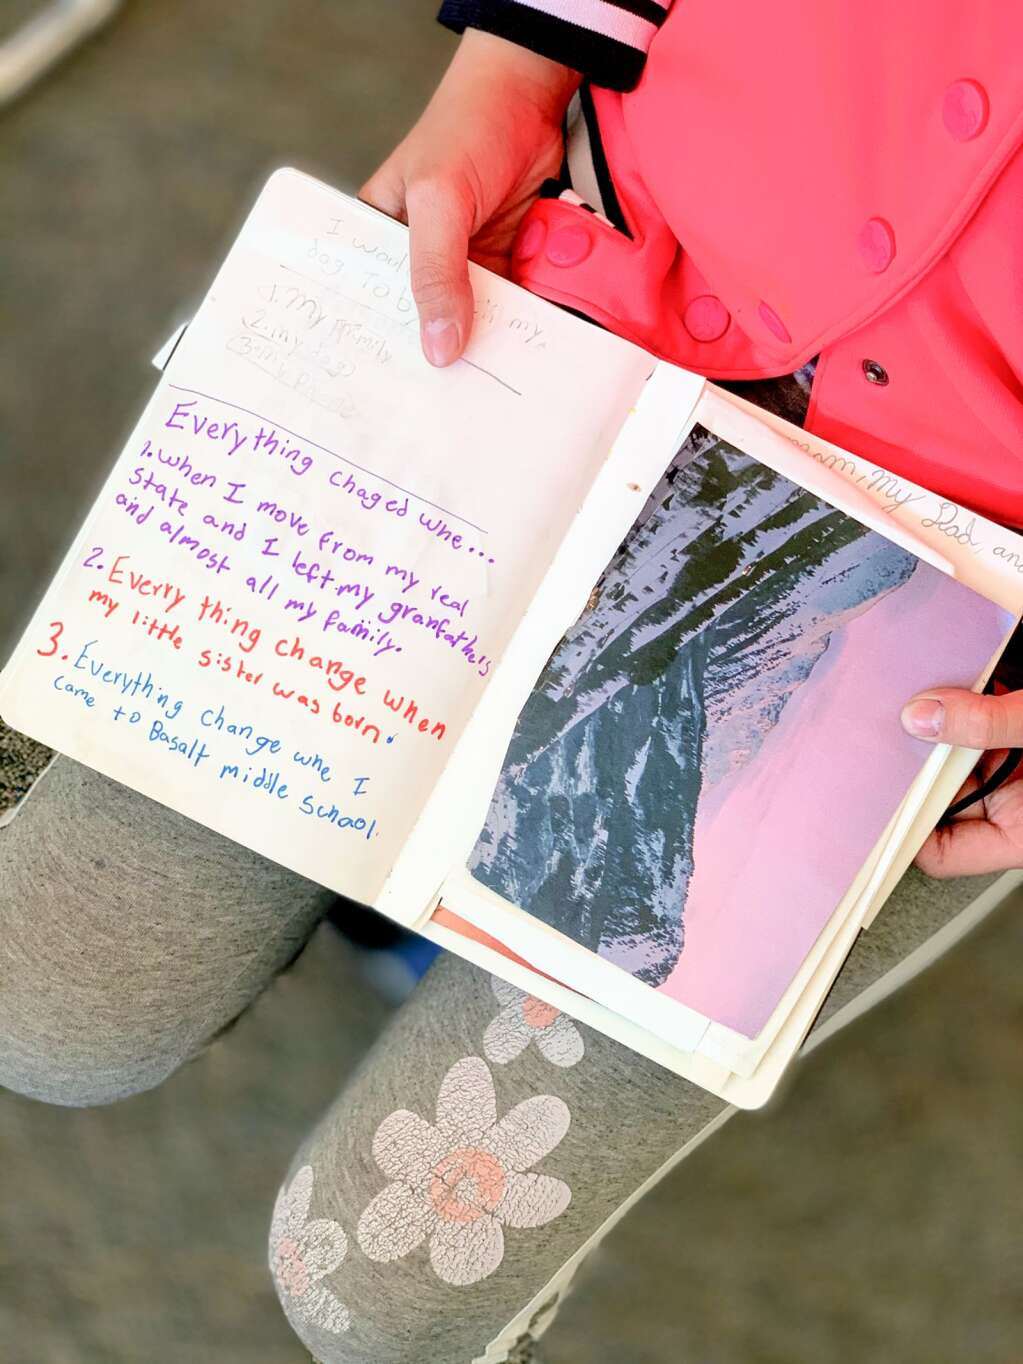 From the VOICES visual journaling project at Basalt Middle School. Photo by Beth White